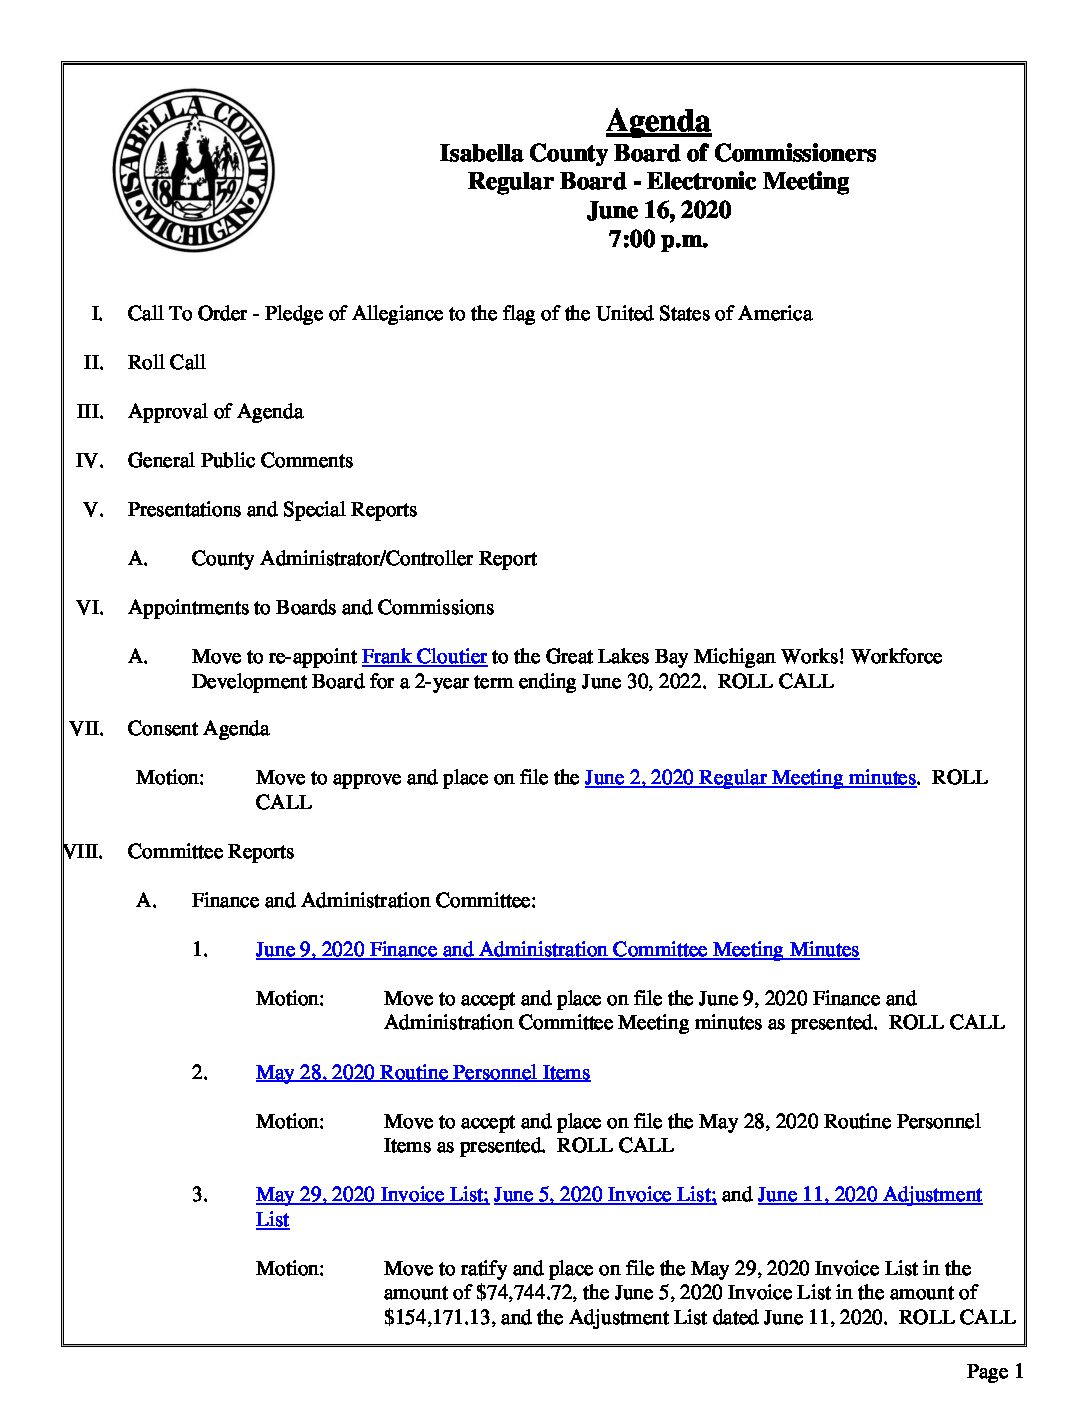 preview image of first page June 16, 2020 Agenda